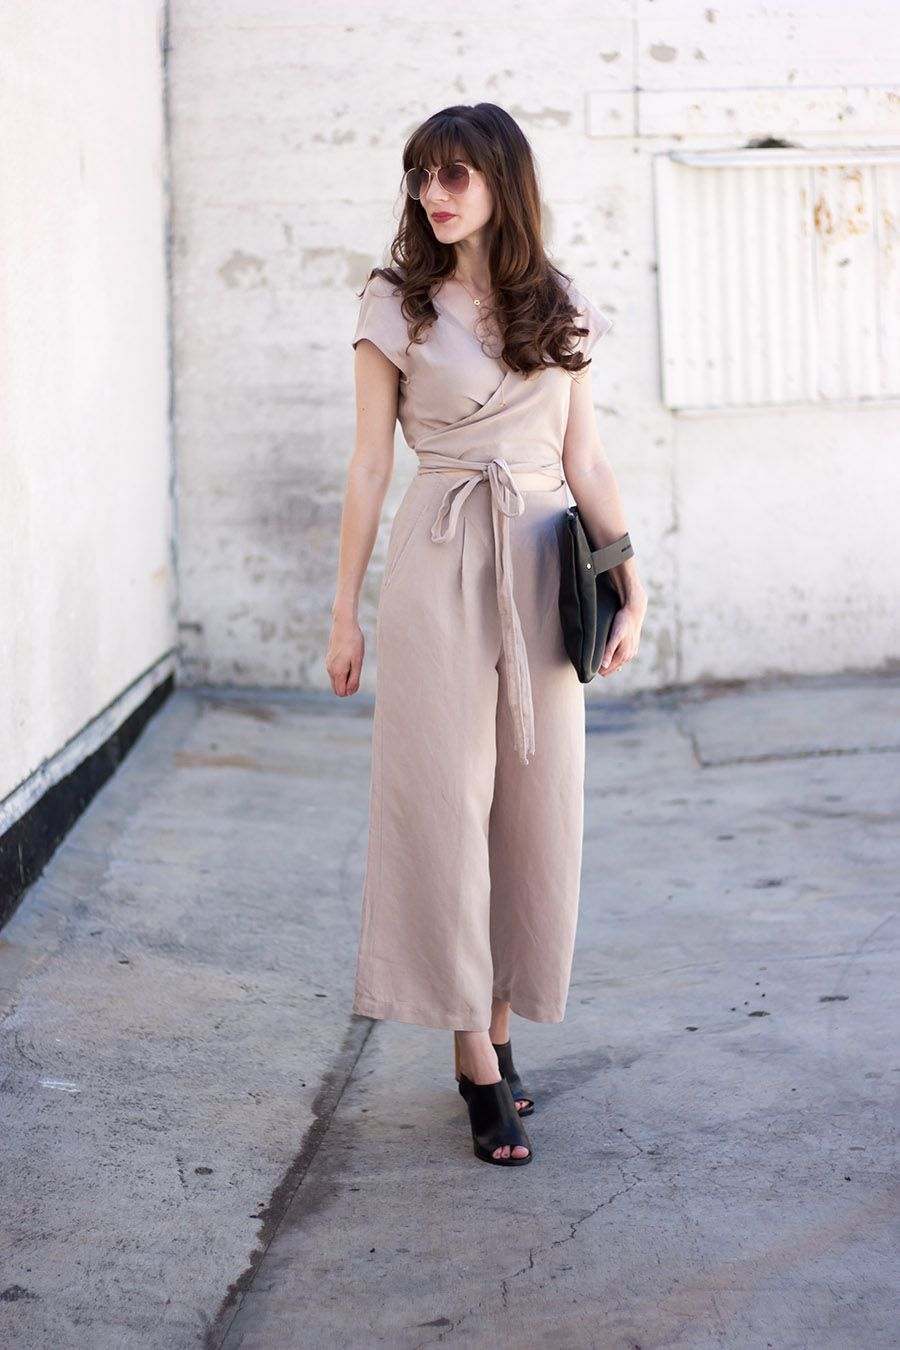 e741e96133 Minimalist summer date night outfit  Neutral linen jumpsuit with black  leather clutch and open toed mules.